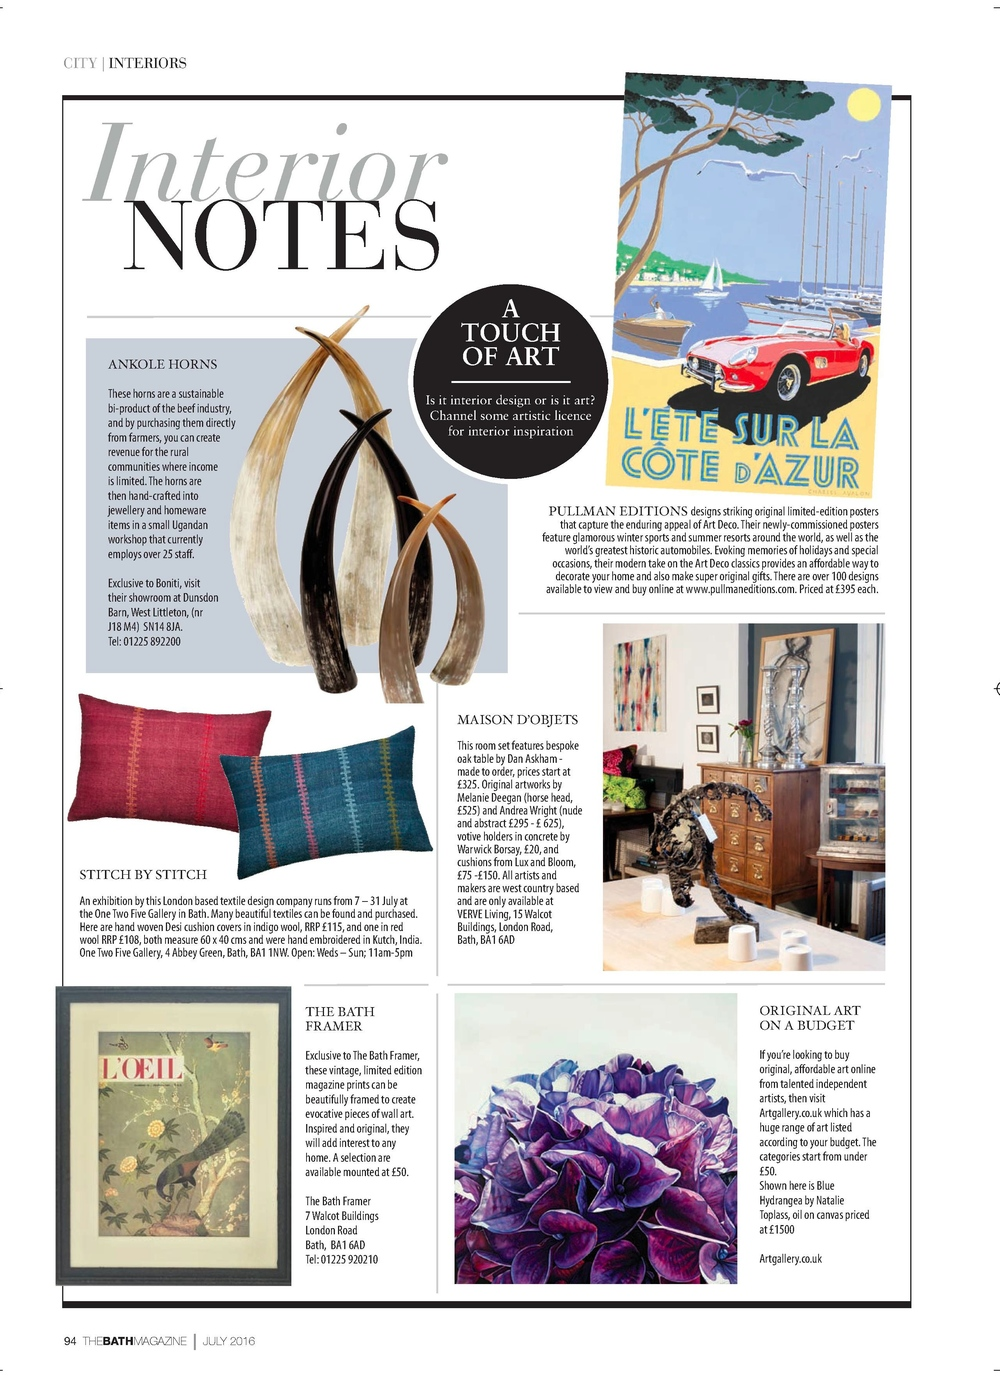 The Bath Magazine, July 2016: Stitch by Stitch exhibition at One Two Five Gallery